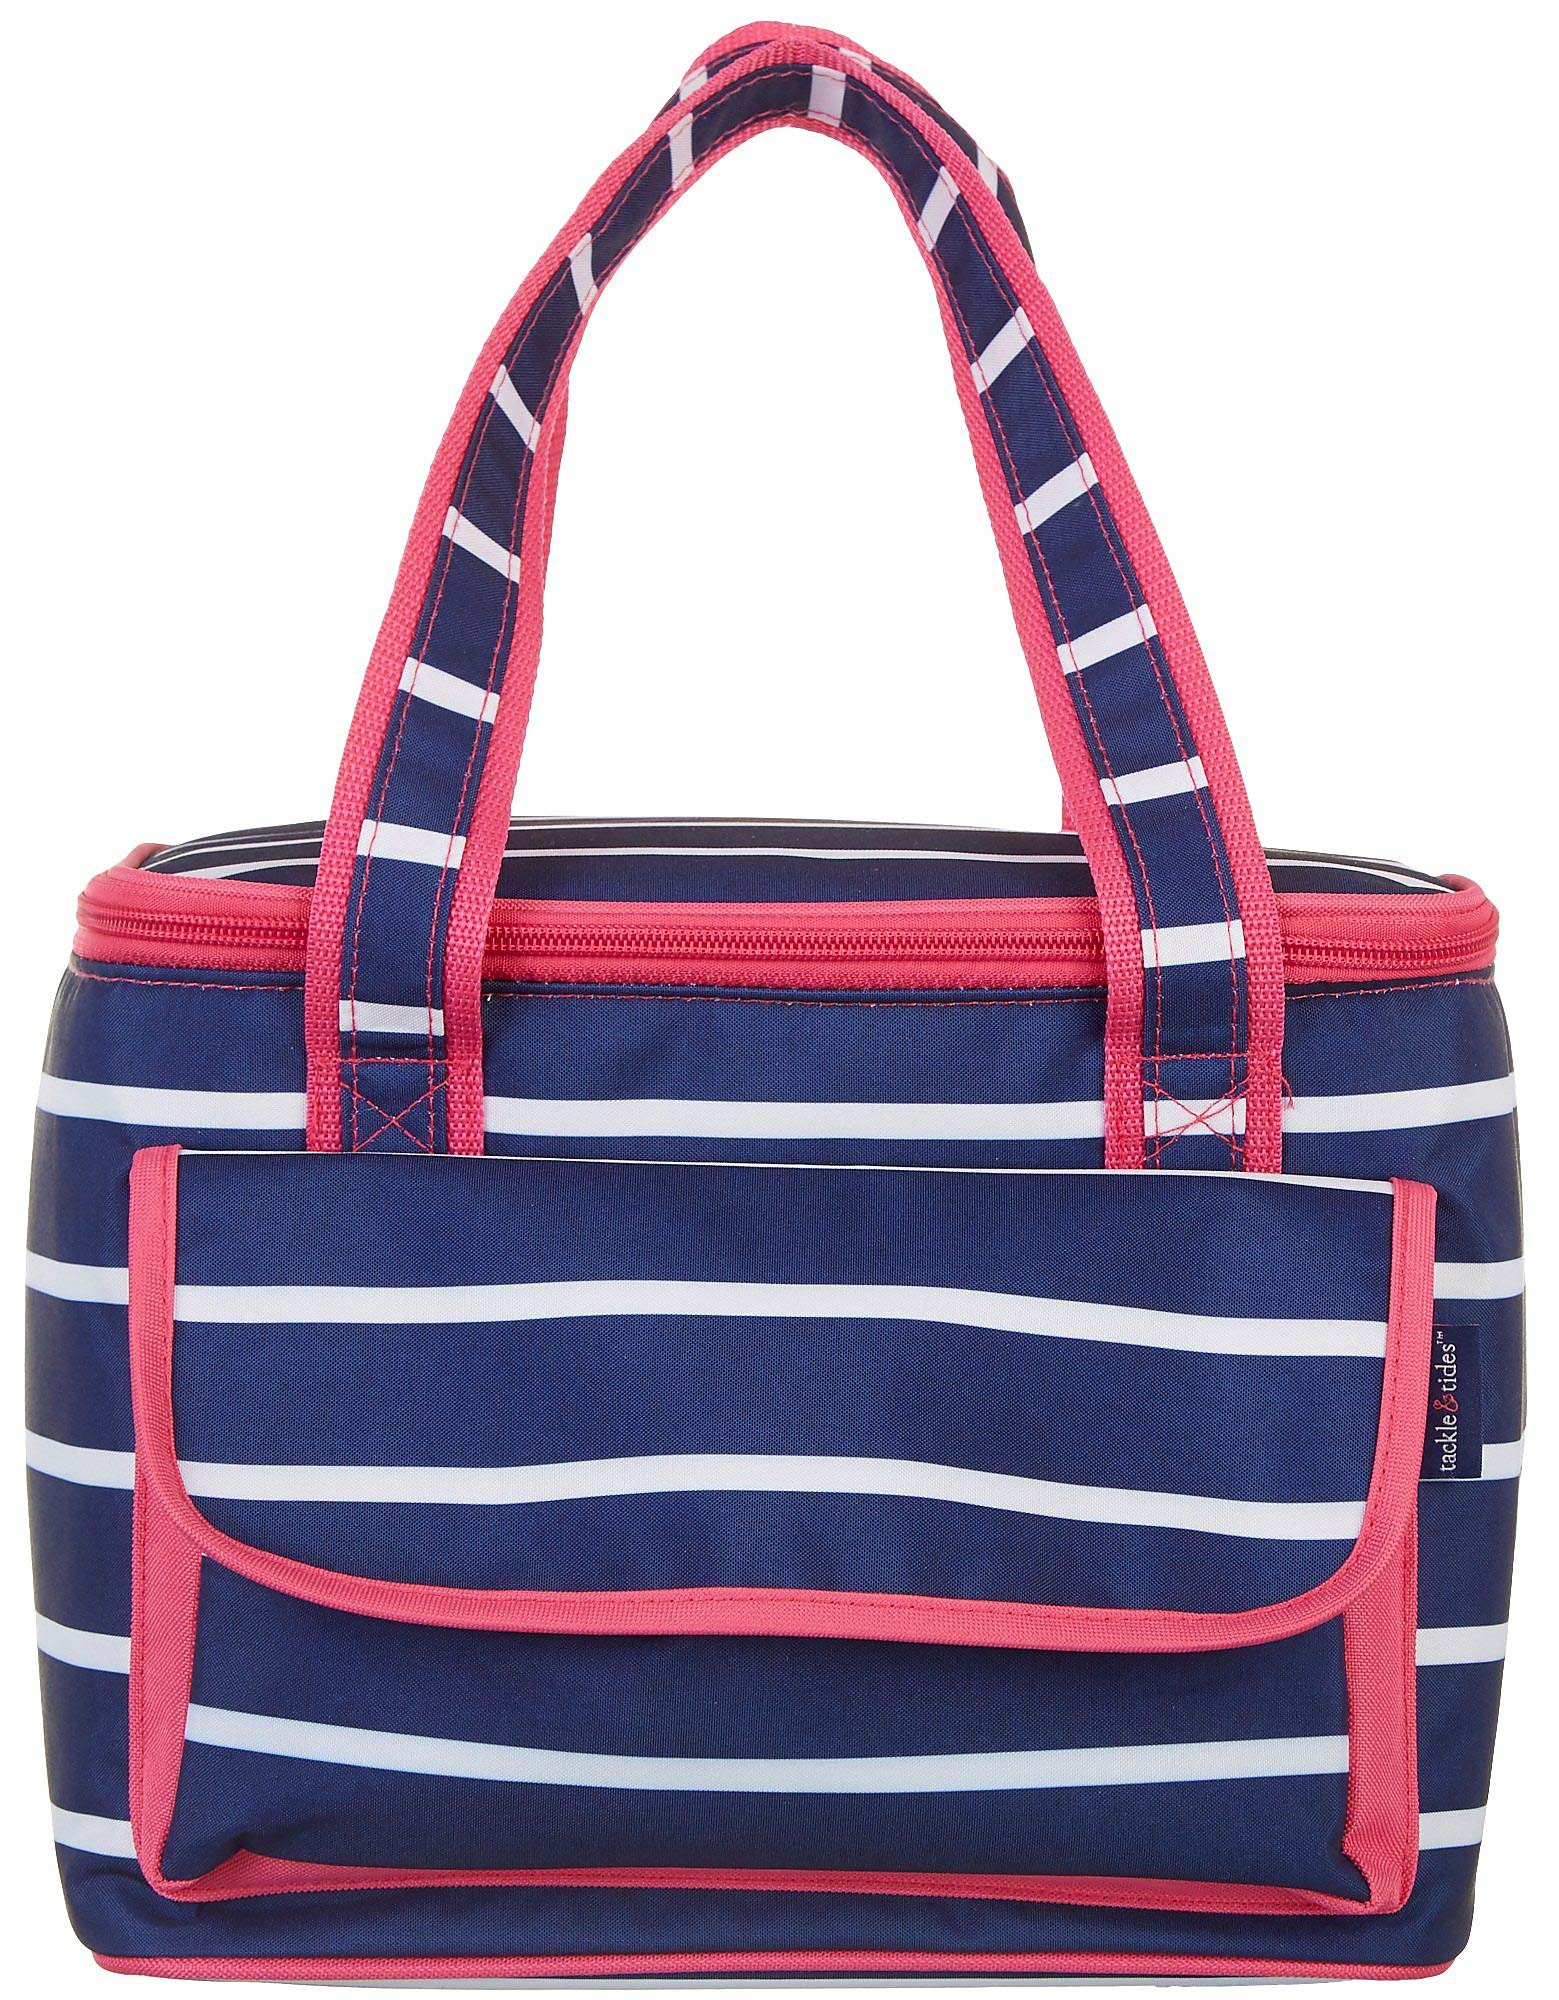 Tackle & Tides Stripe 16 Can Cooler Tote One Size Navy Blue/White/Pink